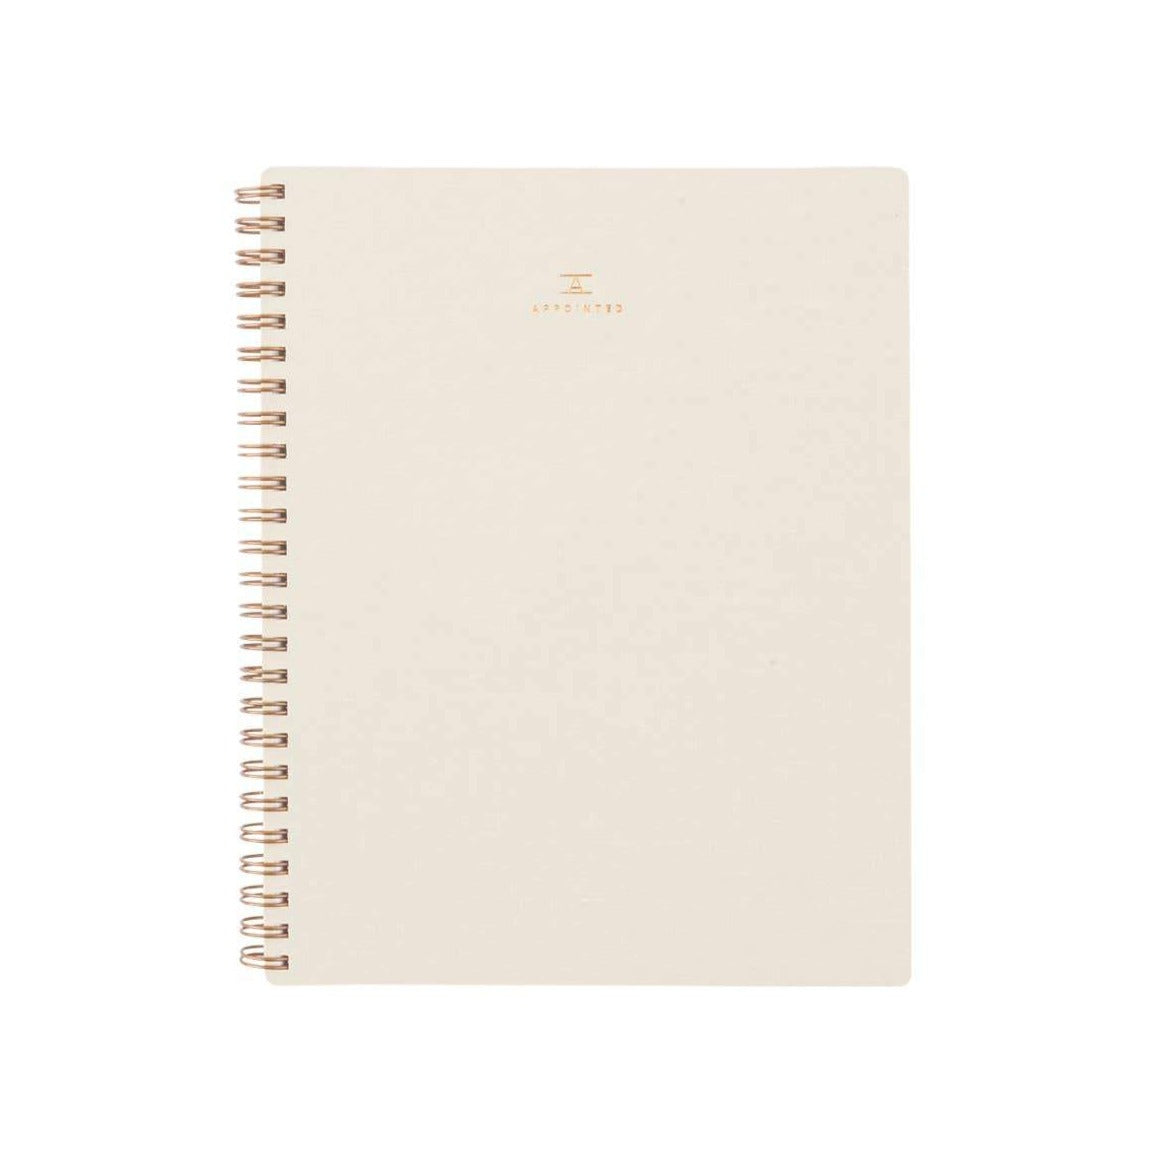 Appointed Coiled Workbook Lined - Natural Linen